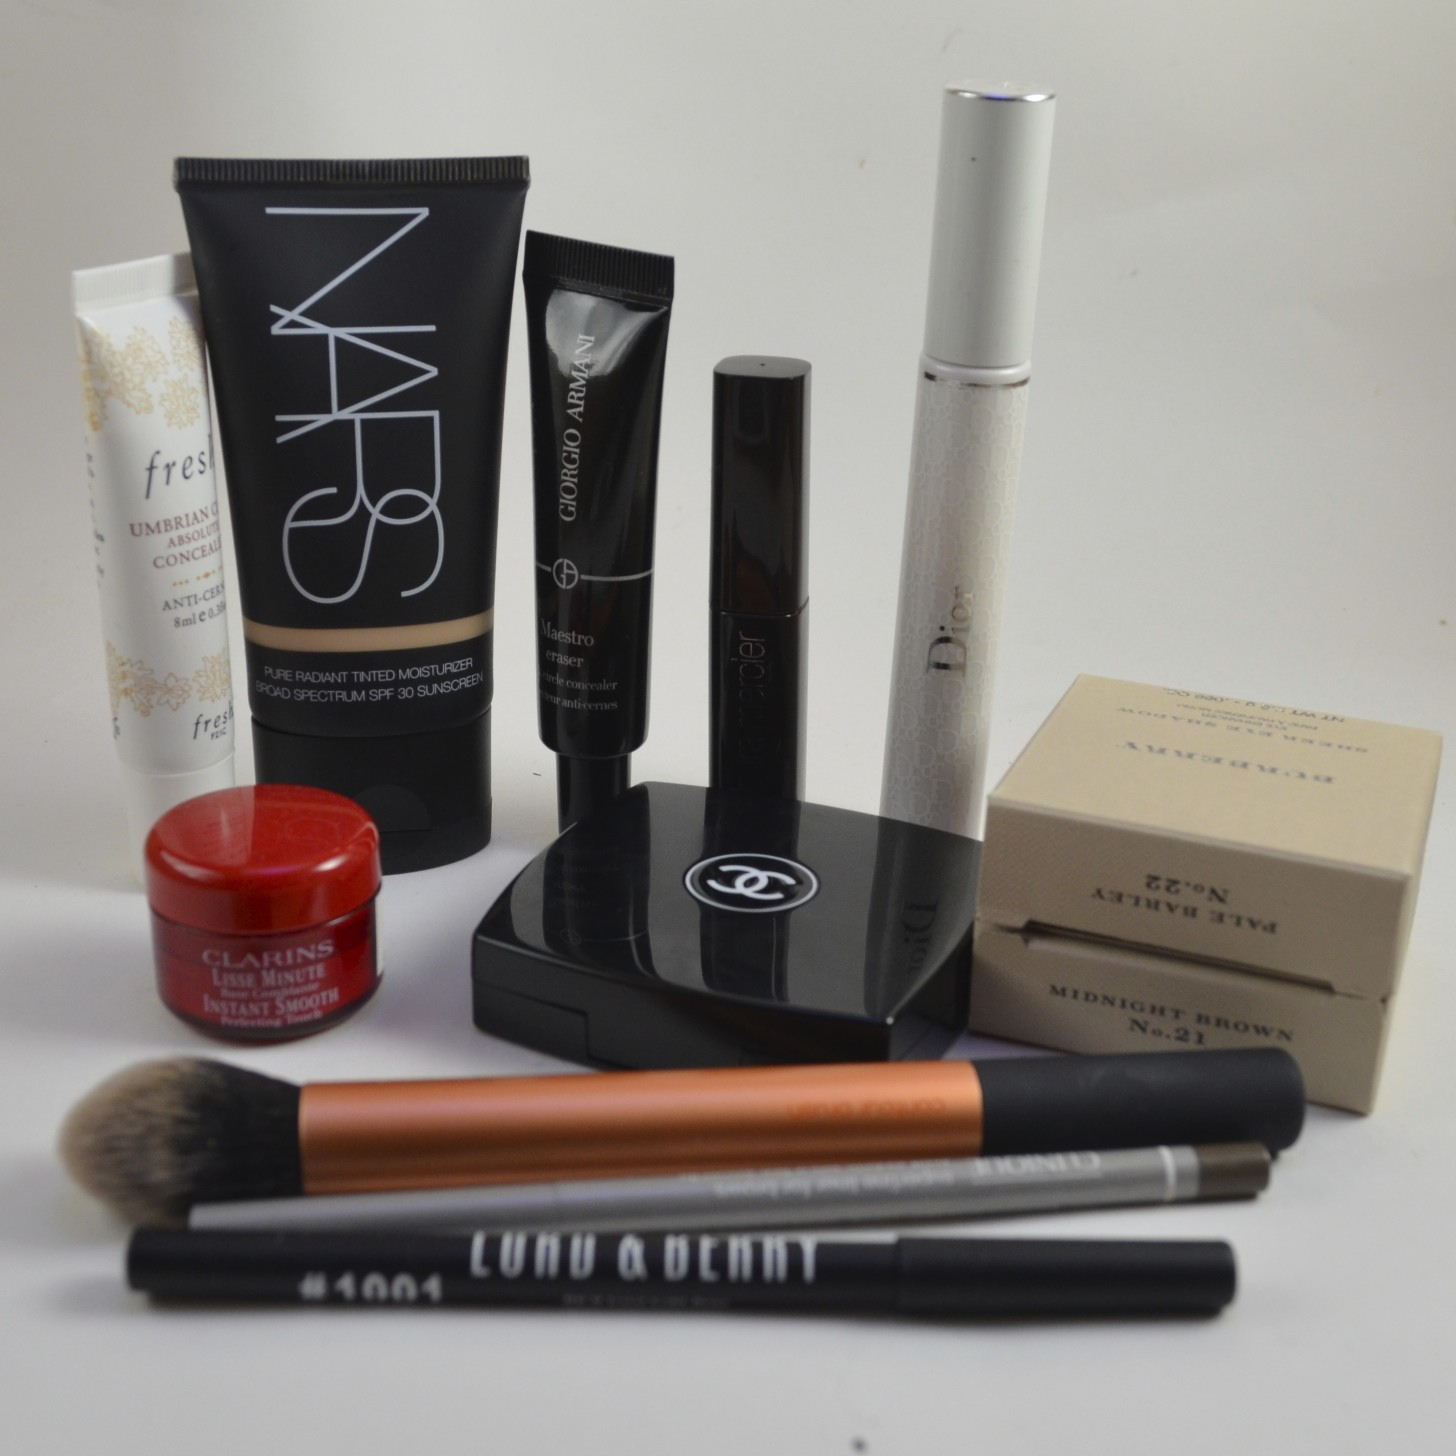 fresh umbrian clay concealer, nars tinted moisturizer, armani maestro eraser, laura mercier full blown volume mascara, diorshow maximizer, burberry midnight brown, burberry pale barley, clarins instant smooth perfecting touch, chanel notorious, clinique superfine liner for brows, lord and berry eyeliner